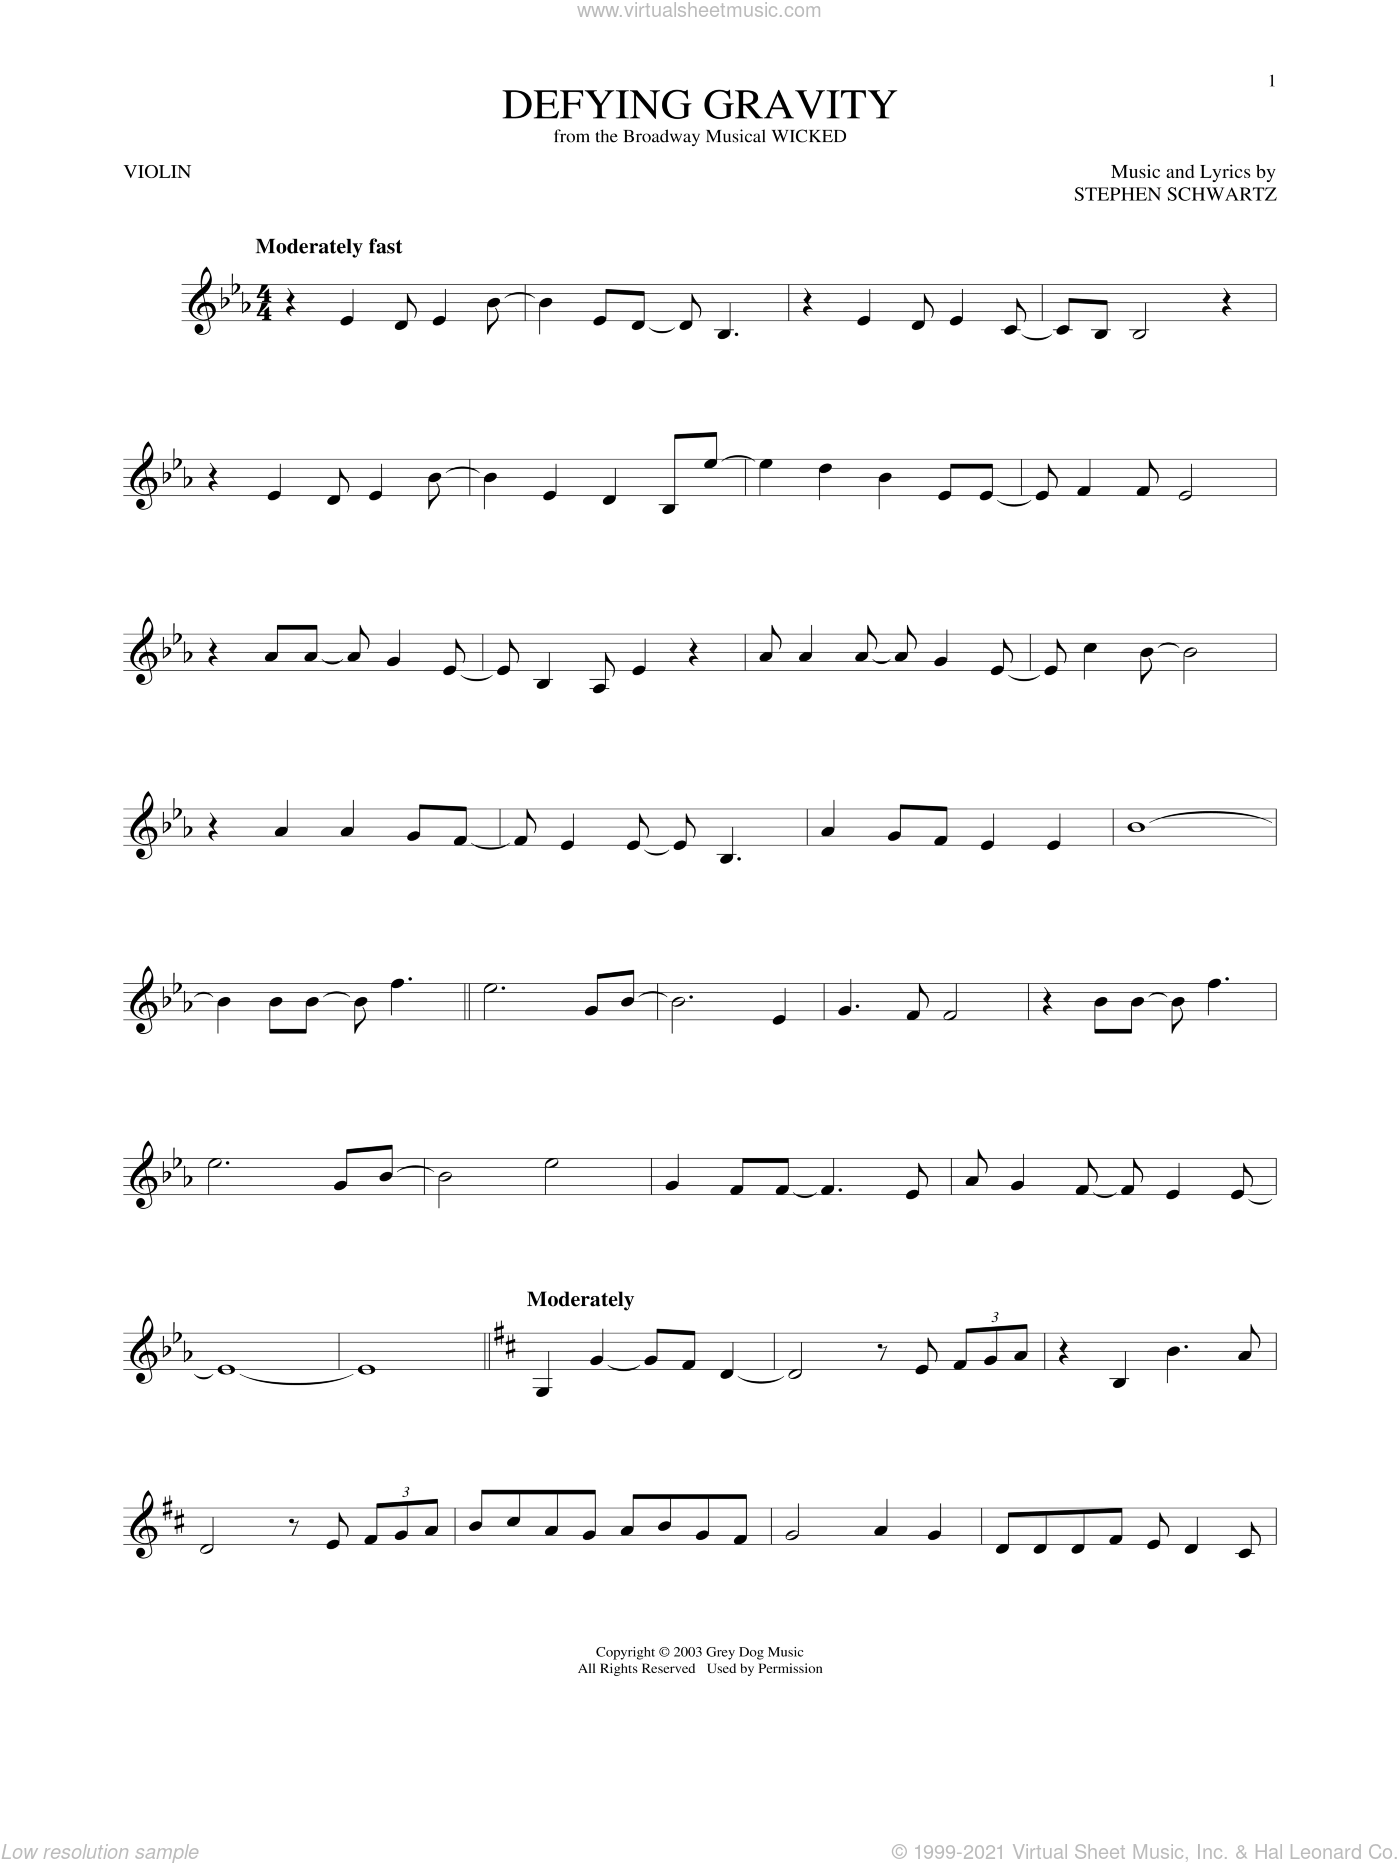 Defying Gravity sheet music for violin solo by Stephen Schwartz, intermediate skill level